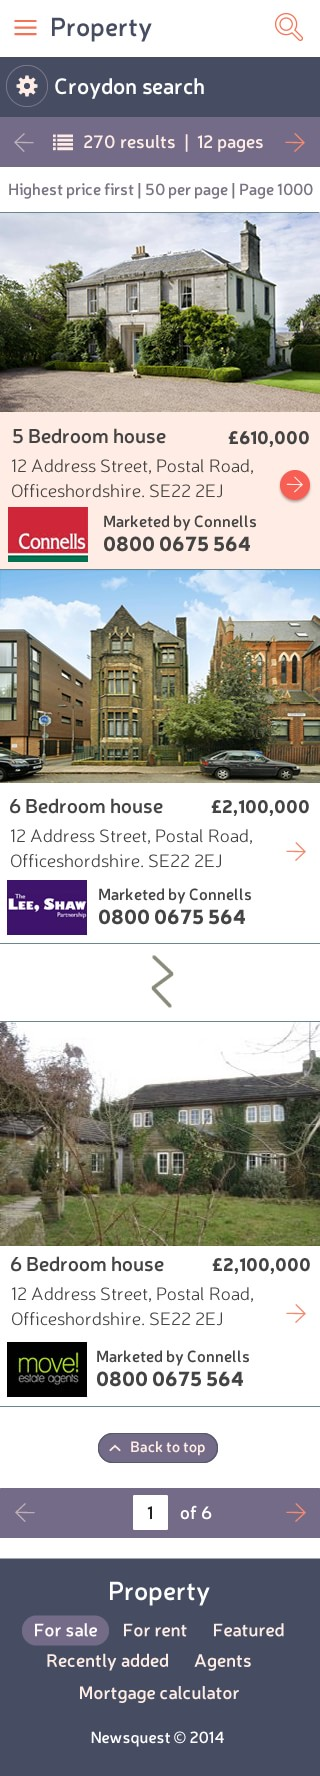 Property search page mobile breakpoint